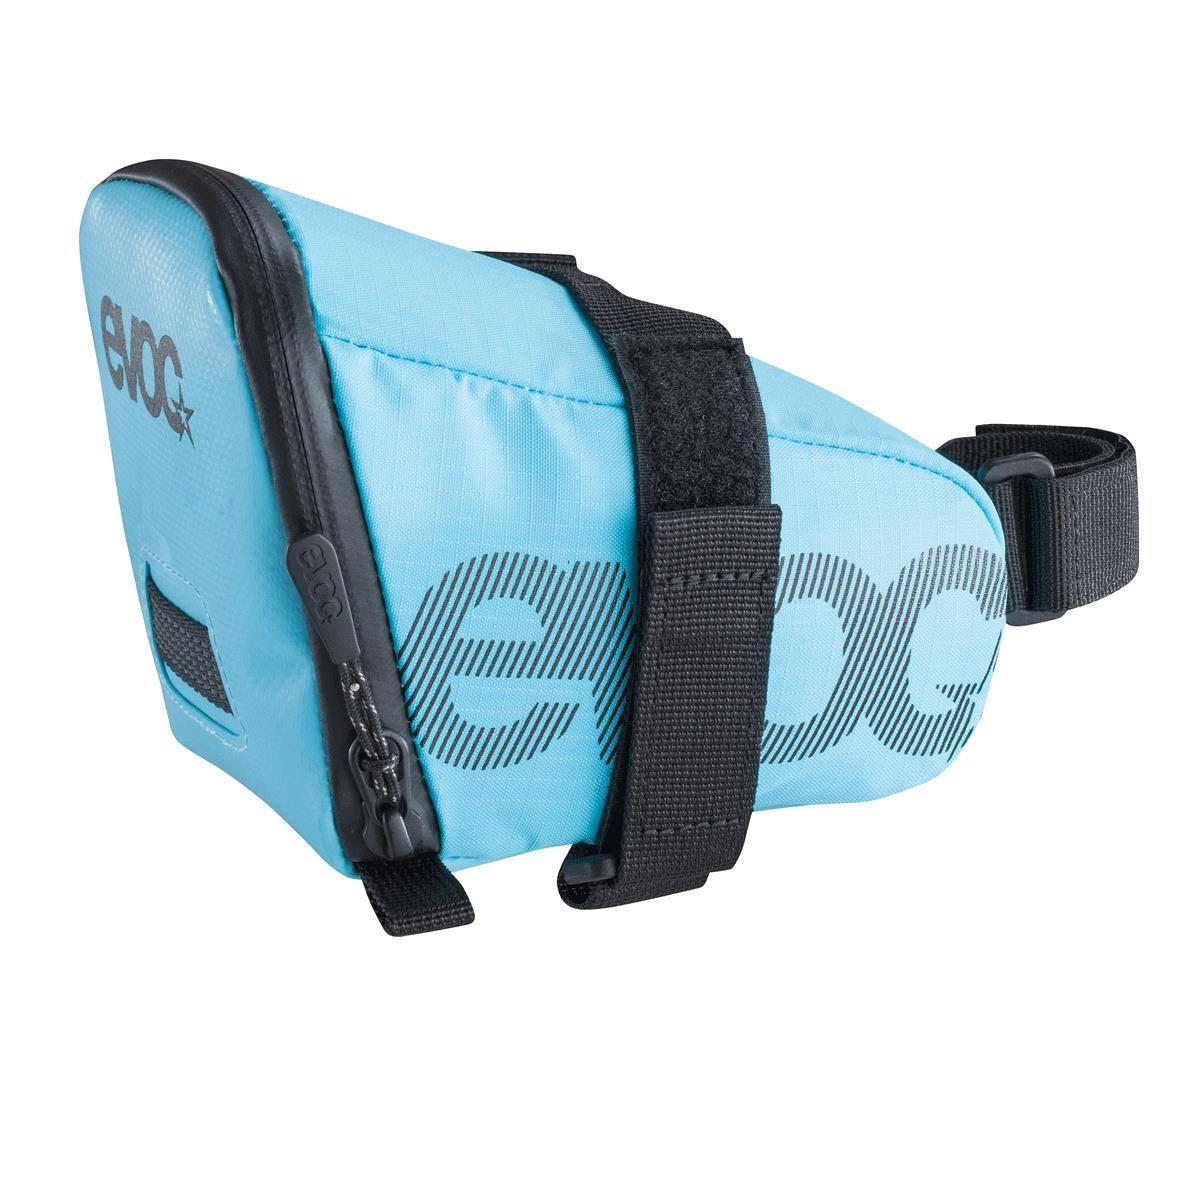 Evoc Cycling Tour Saddle Bag - Neon Blue, Large